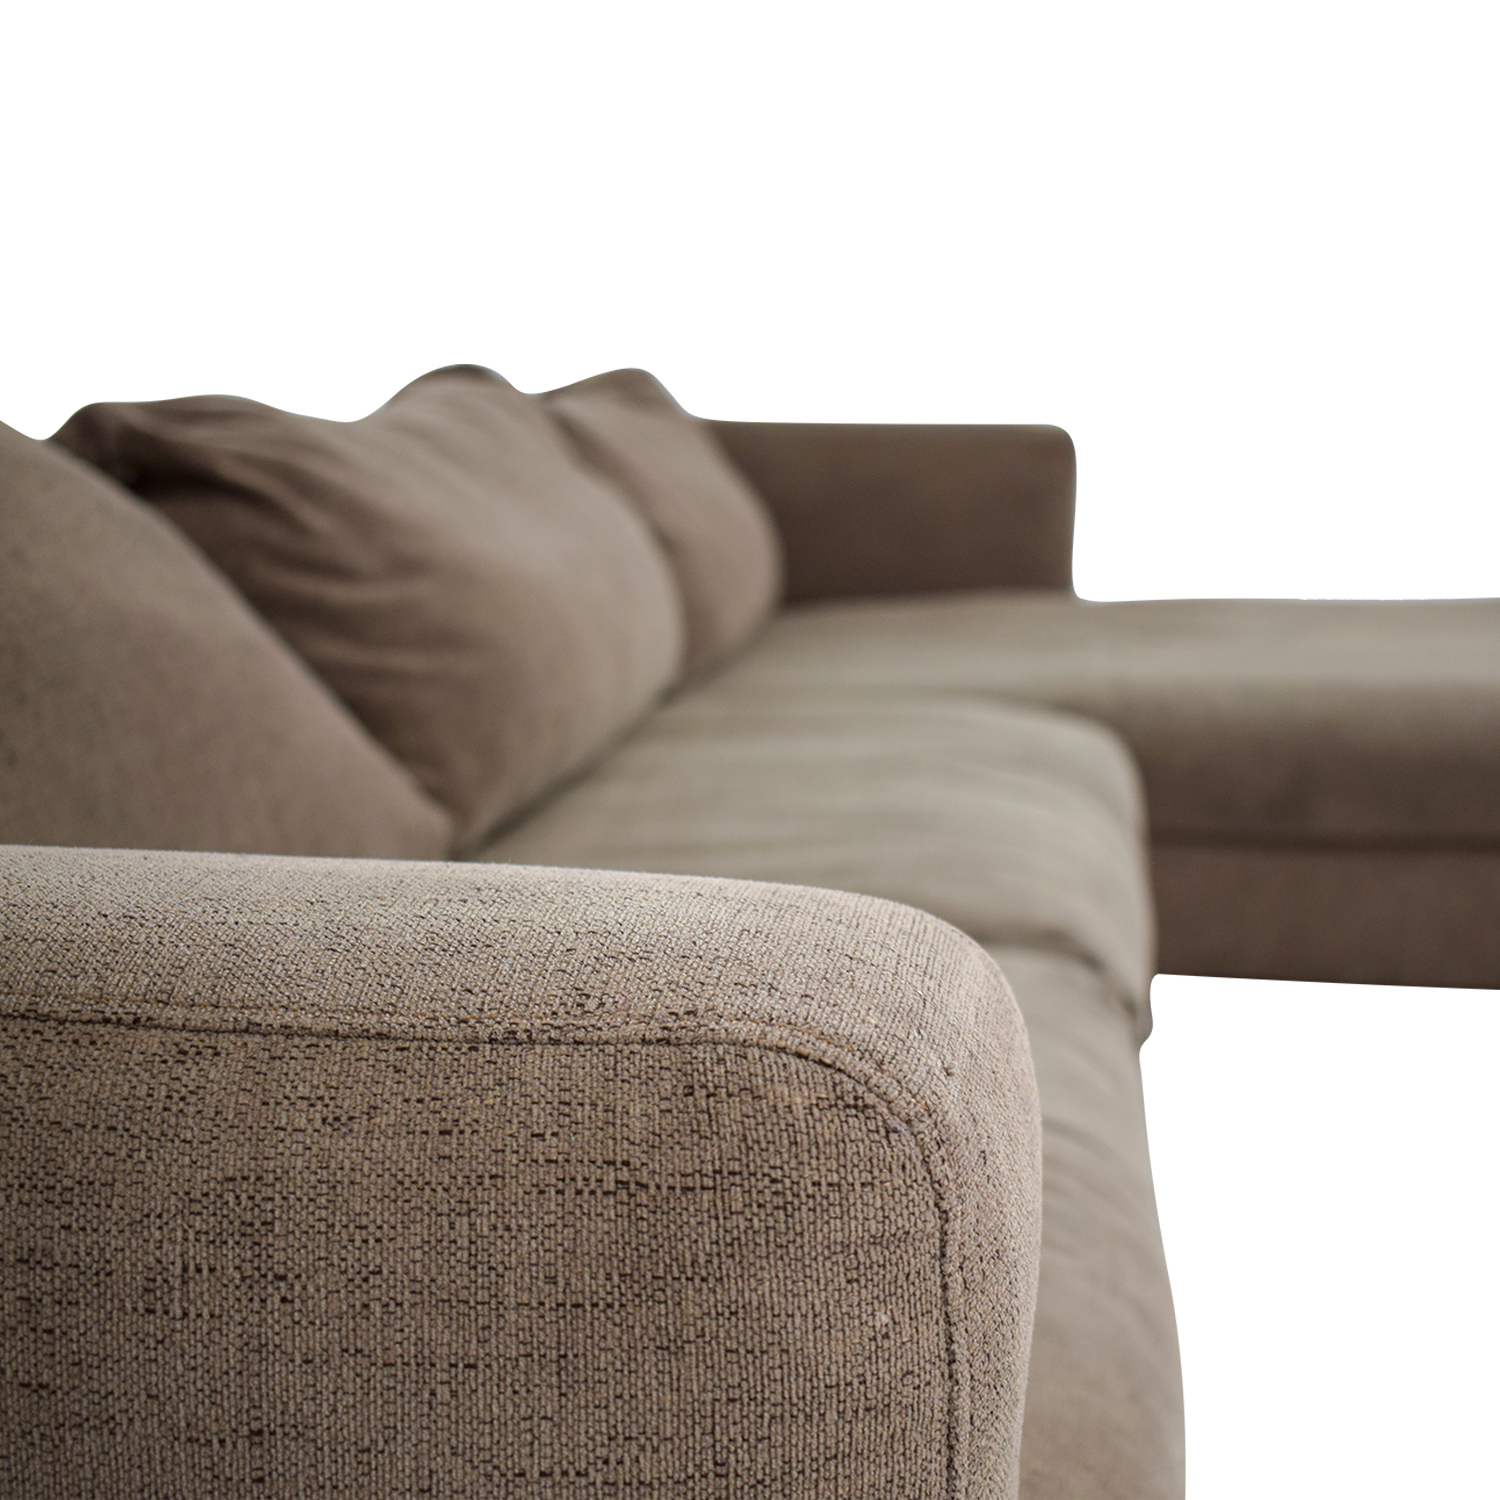 Plummers Sectional Sofas: Plummers Furniture Plummers Furniture Tan Down